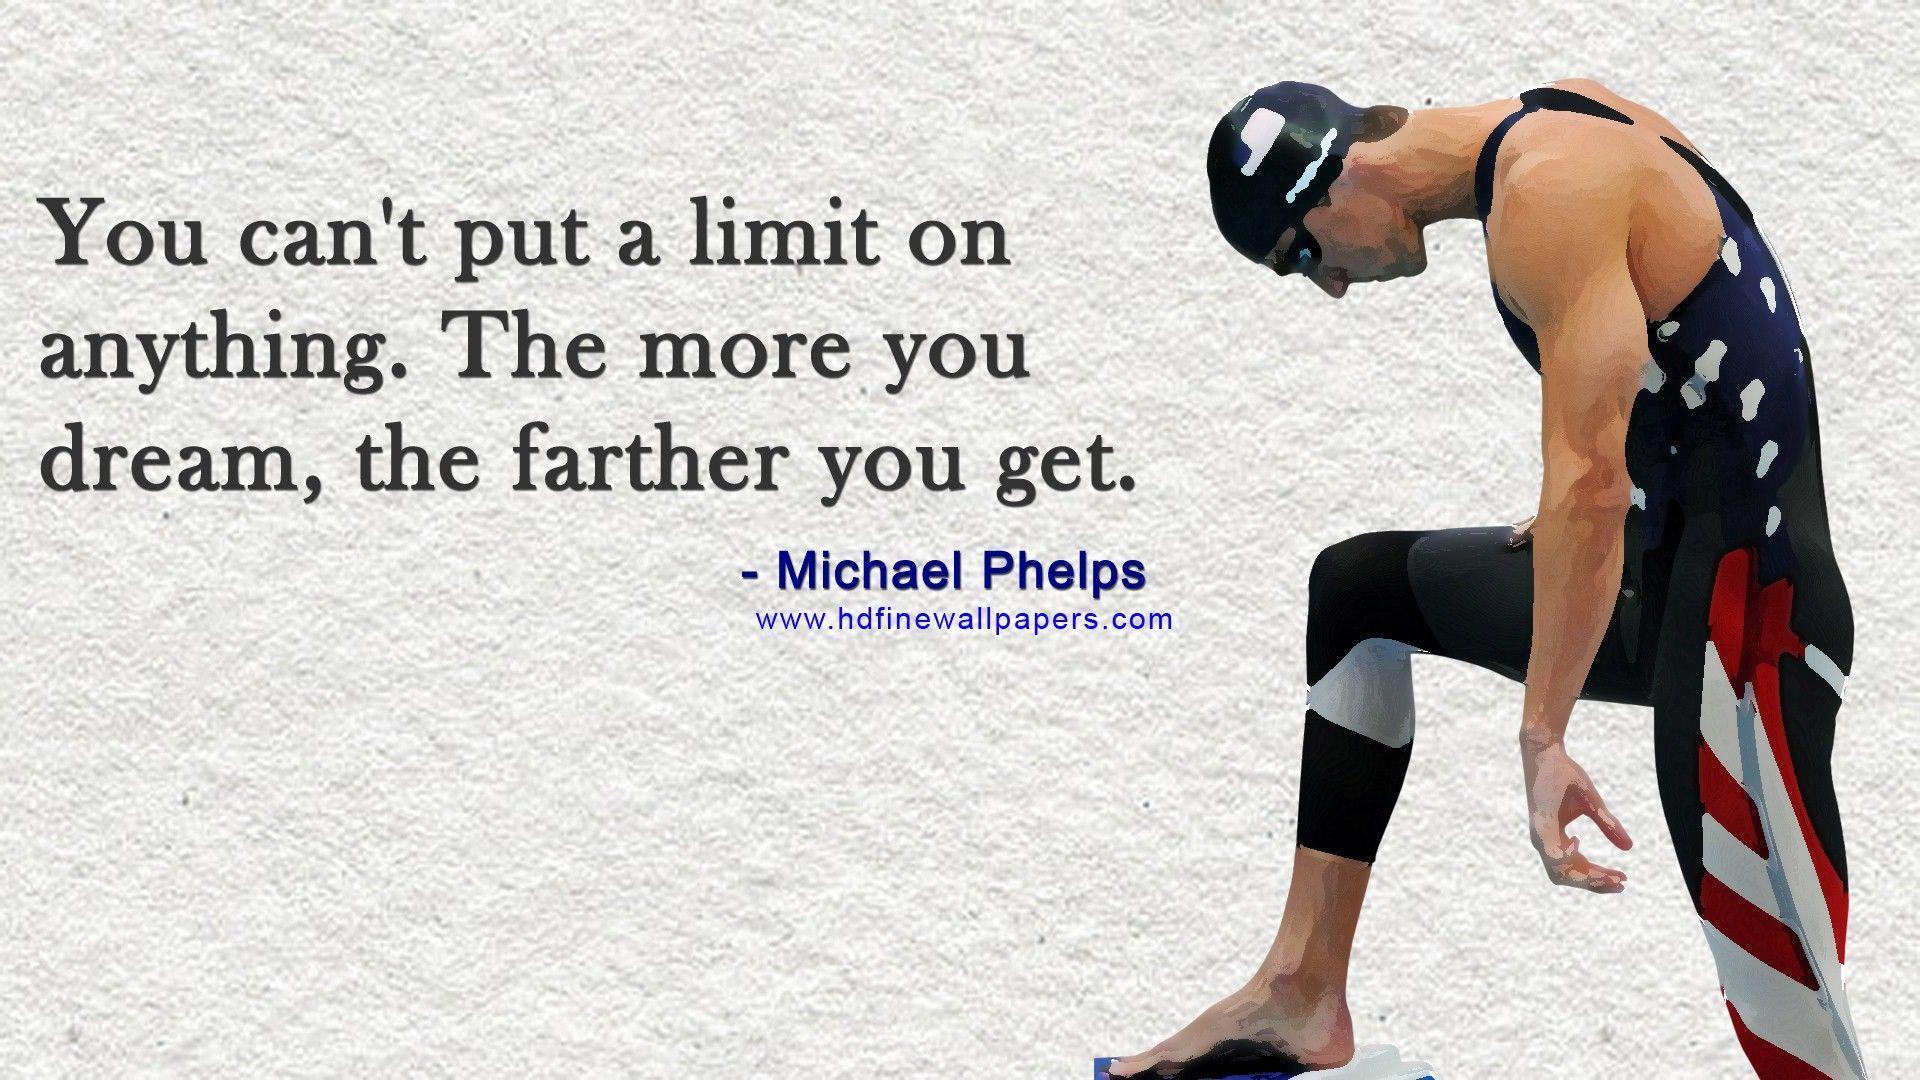 Michael Phelps Quotes Wallpapers HD Backgrounds, Image, Pics